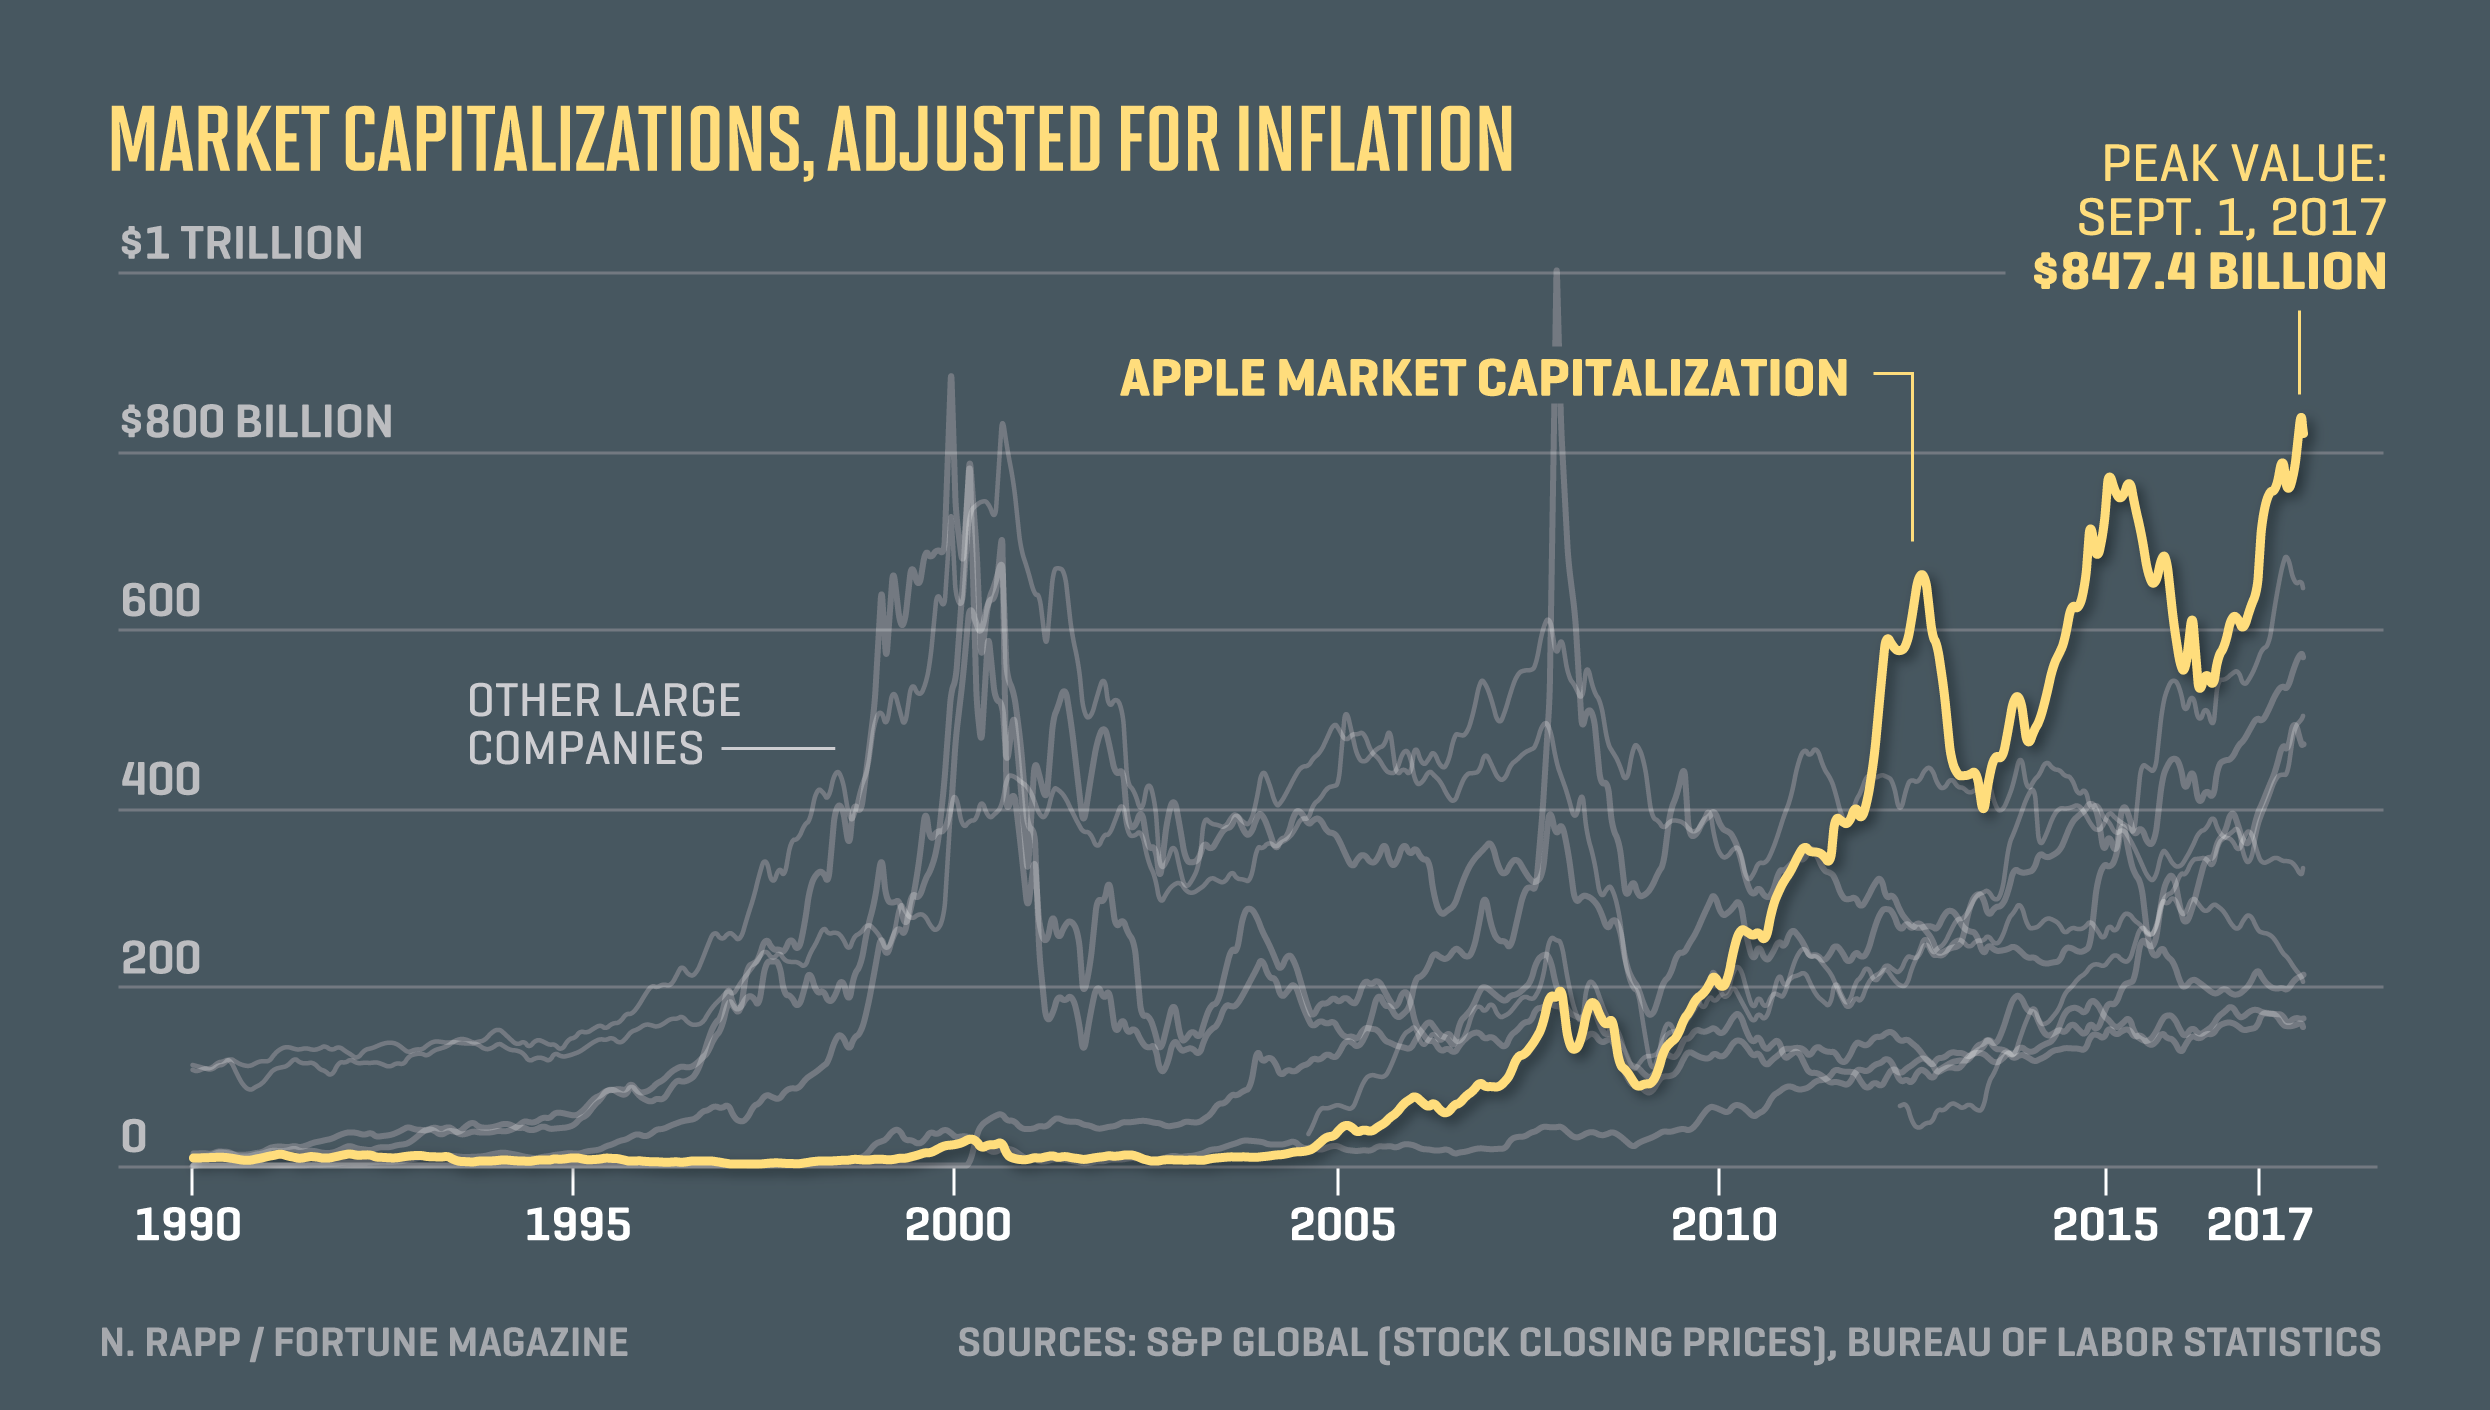 Chart shows Apple market capitalization compared to other companies